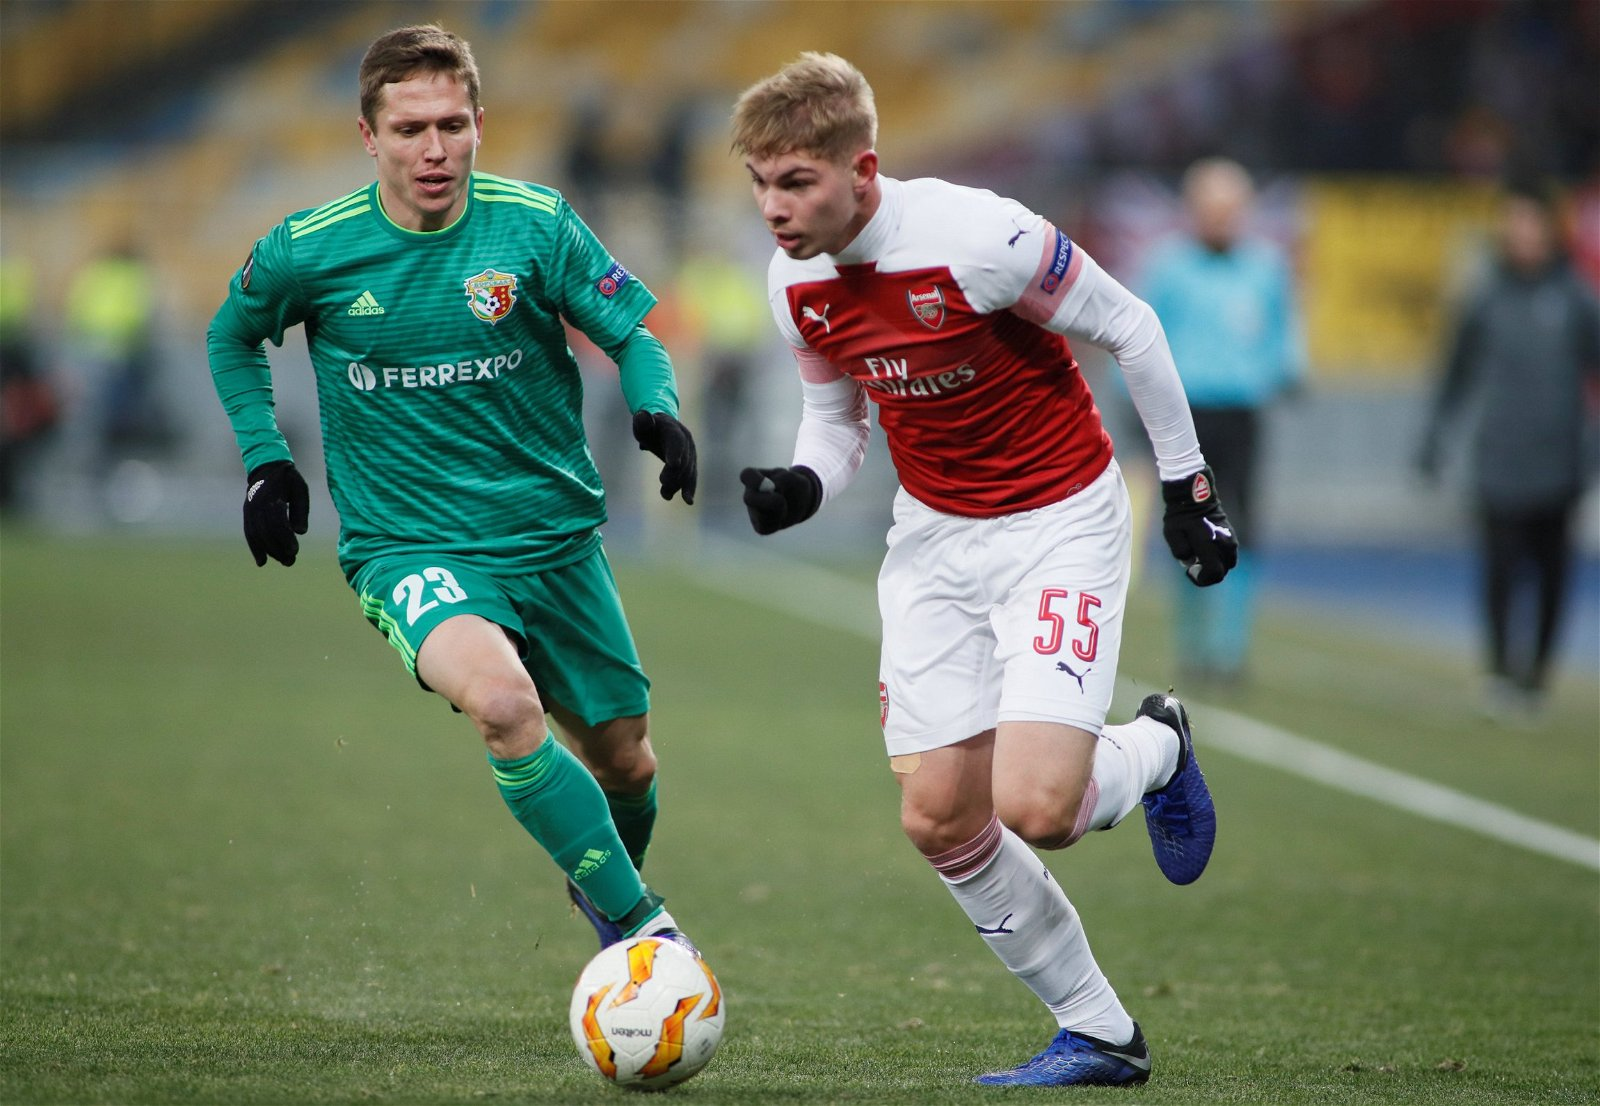 Emile Smith Rowe in action for Arsenal - Play them or pay the price: Arsenal & Man City exits a warning for the Premier League